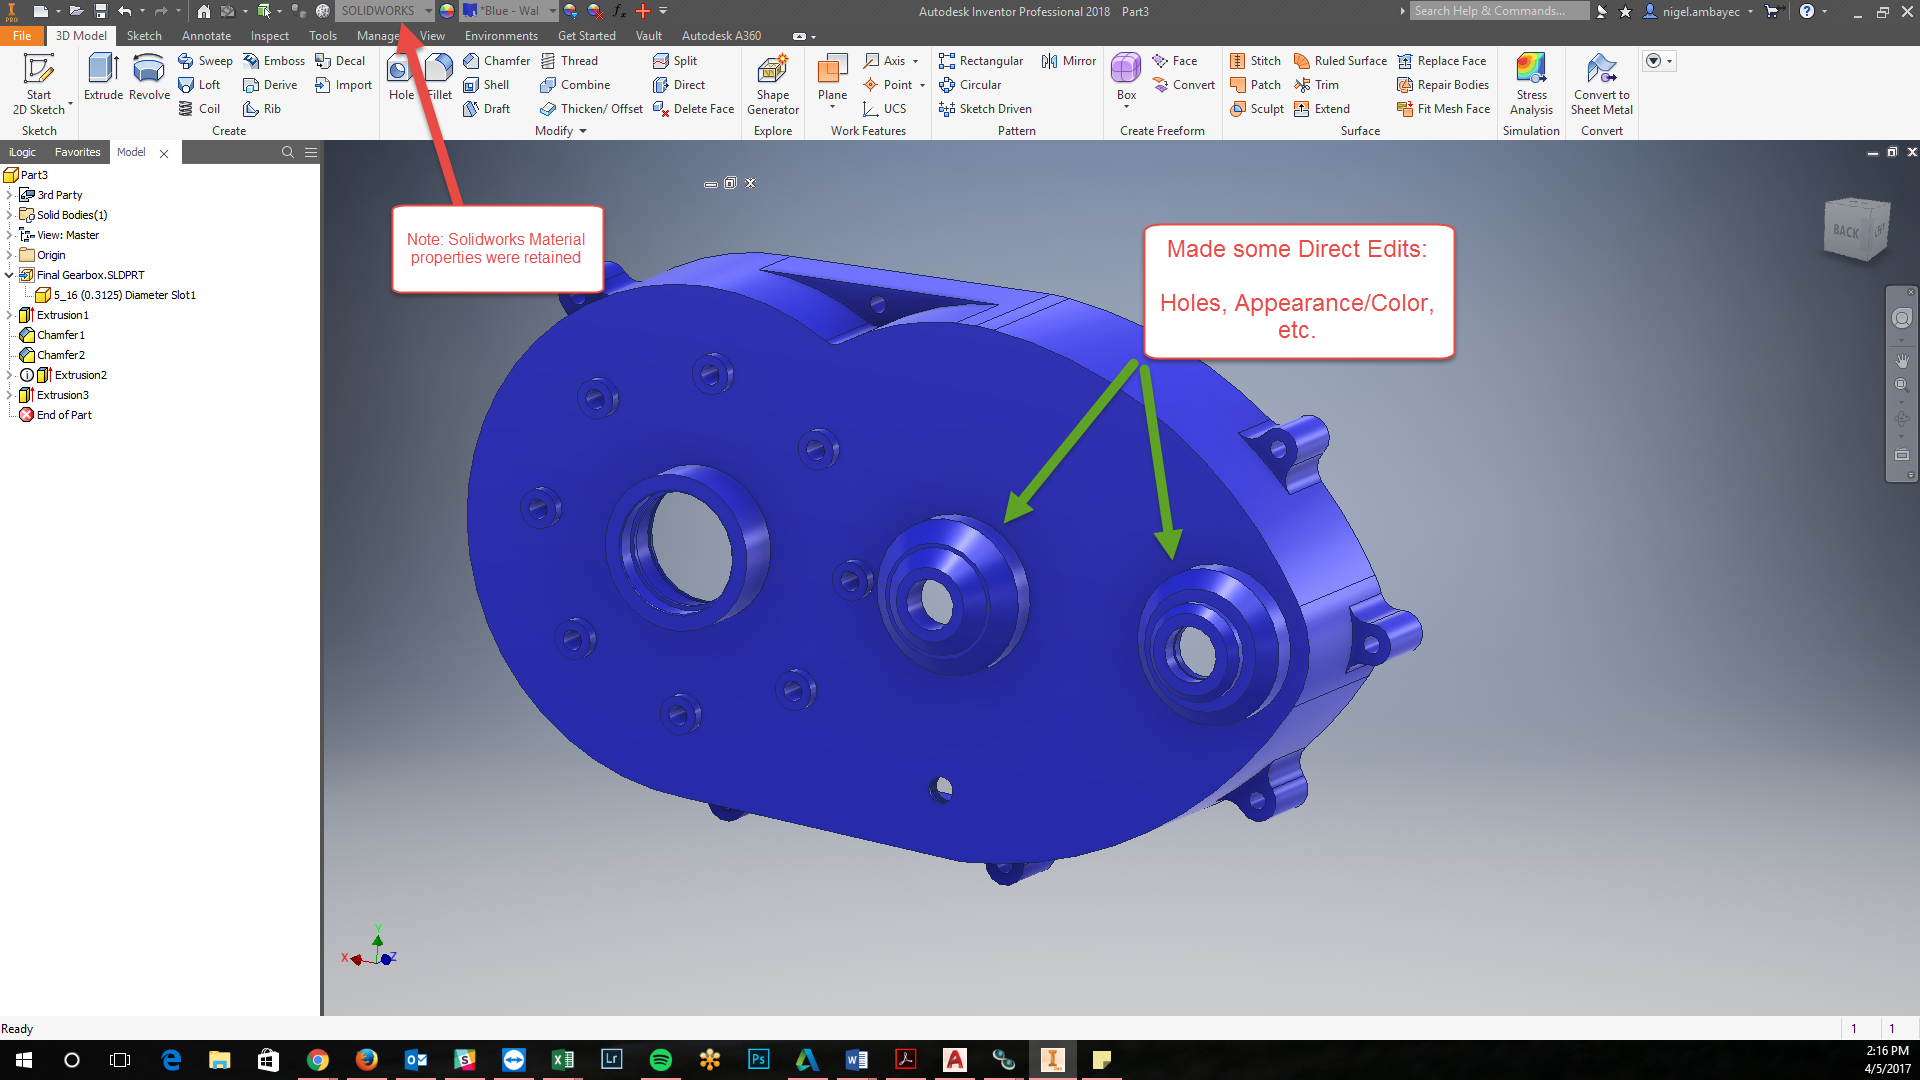 Autodesk Inventor AnyCAD - Updated File